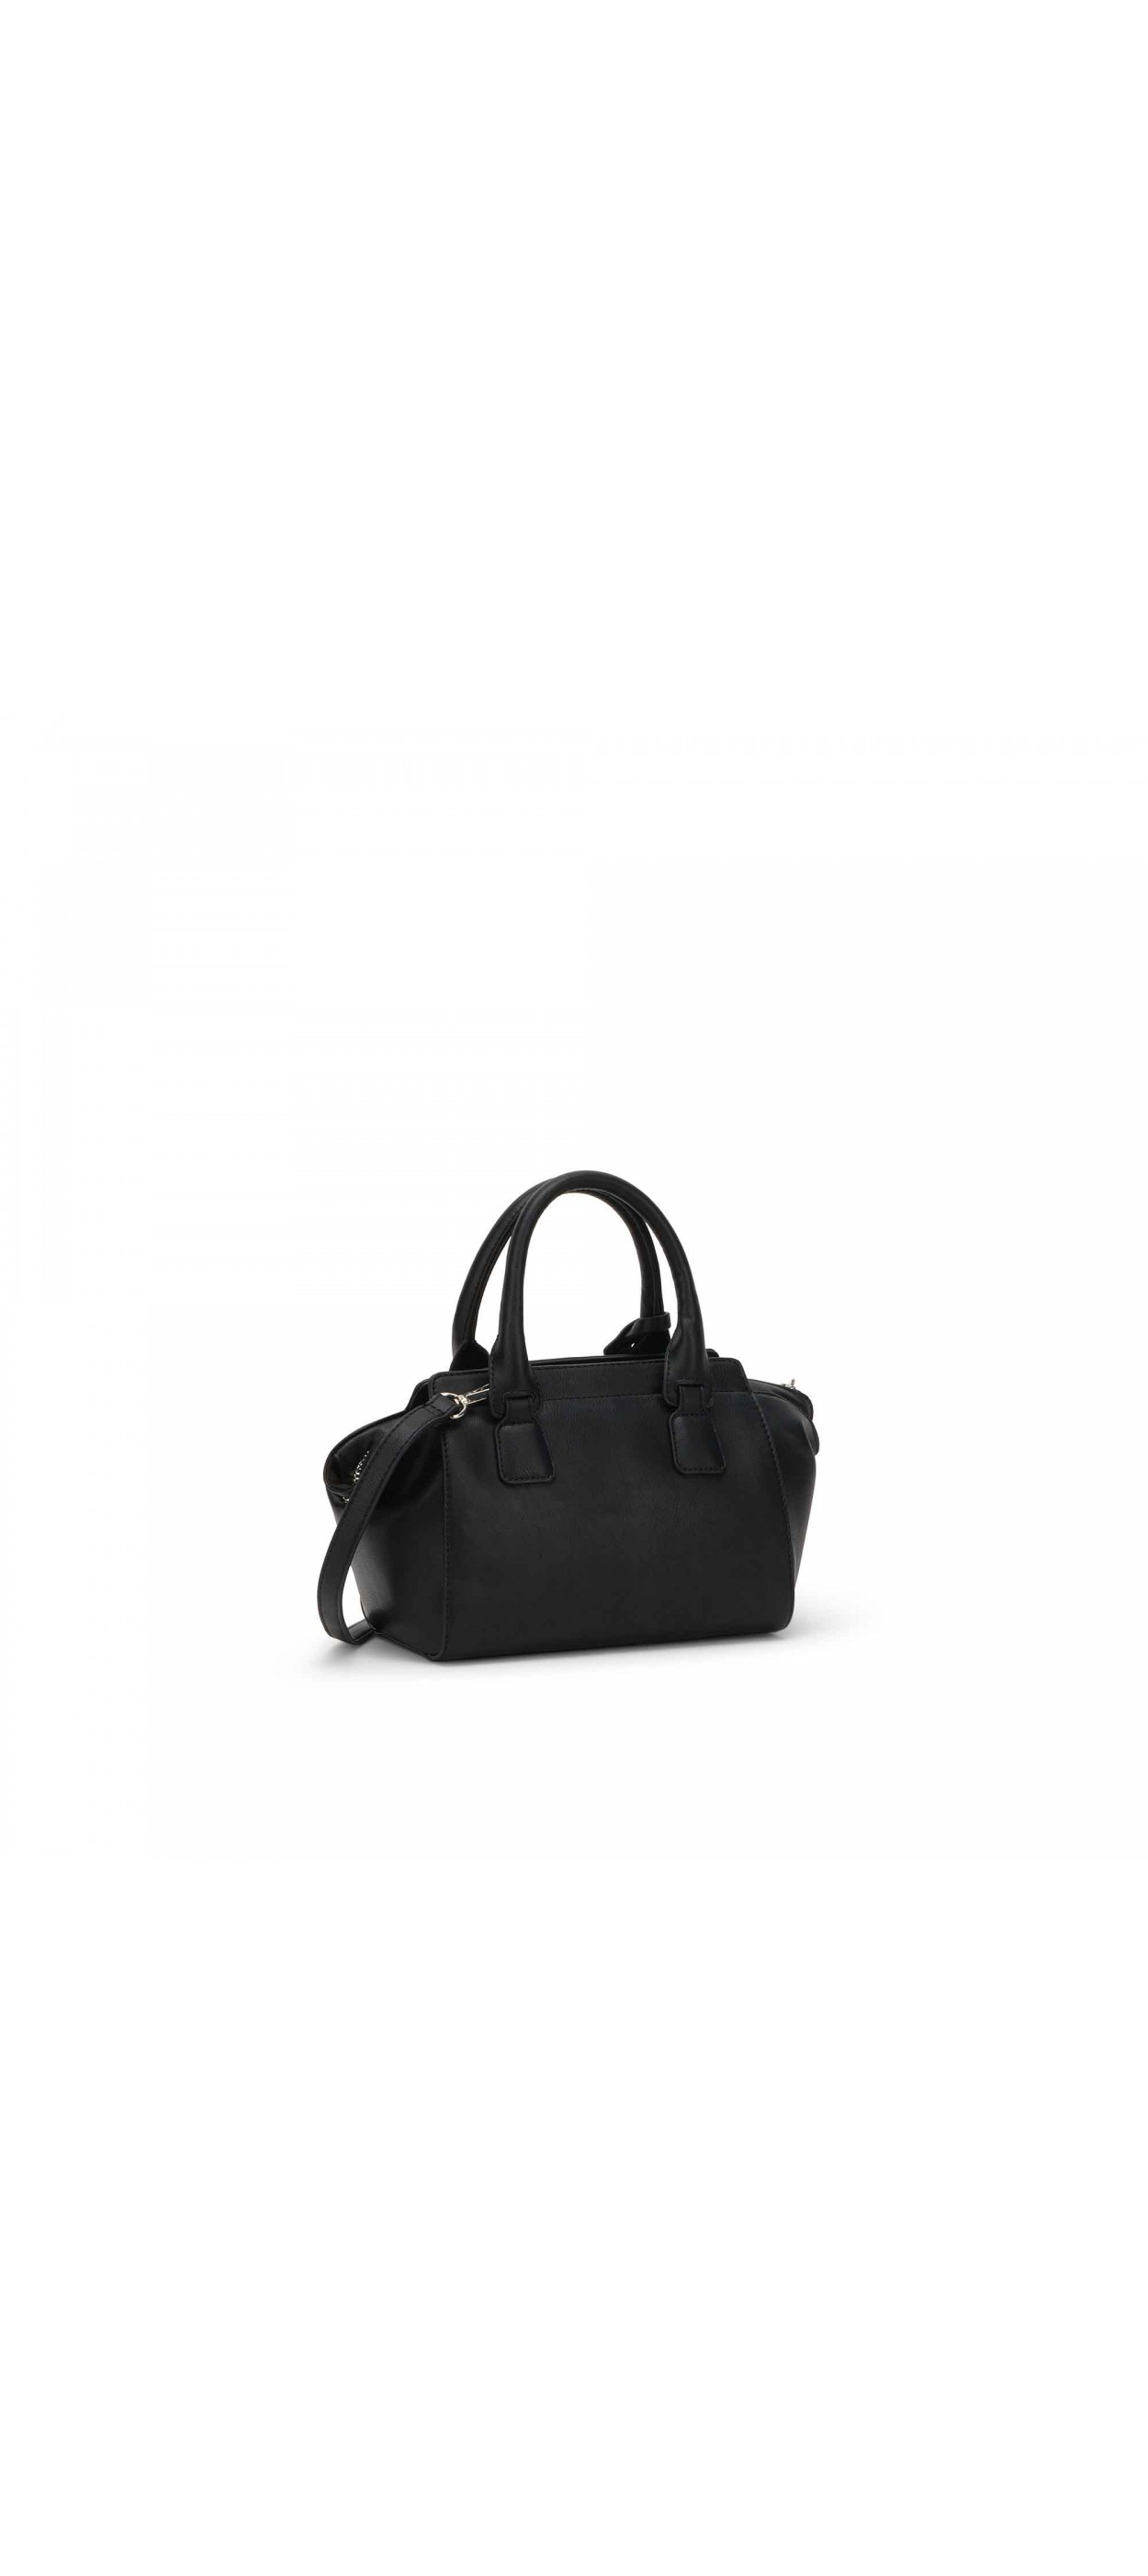 HAND BAG - GBDA1851 - GAELLE PARIS